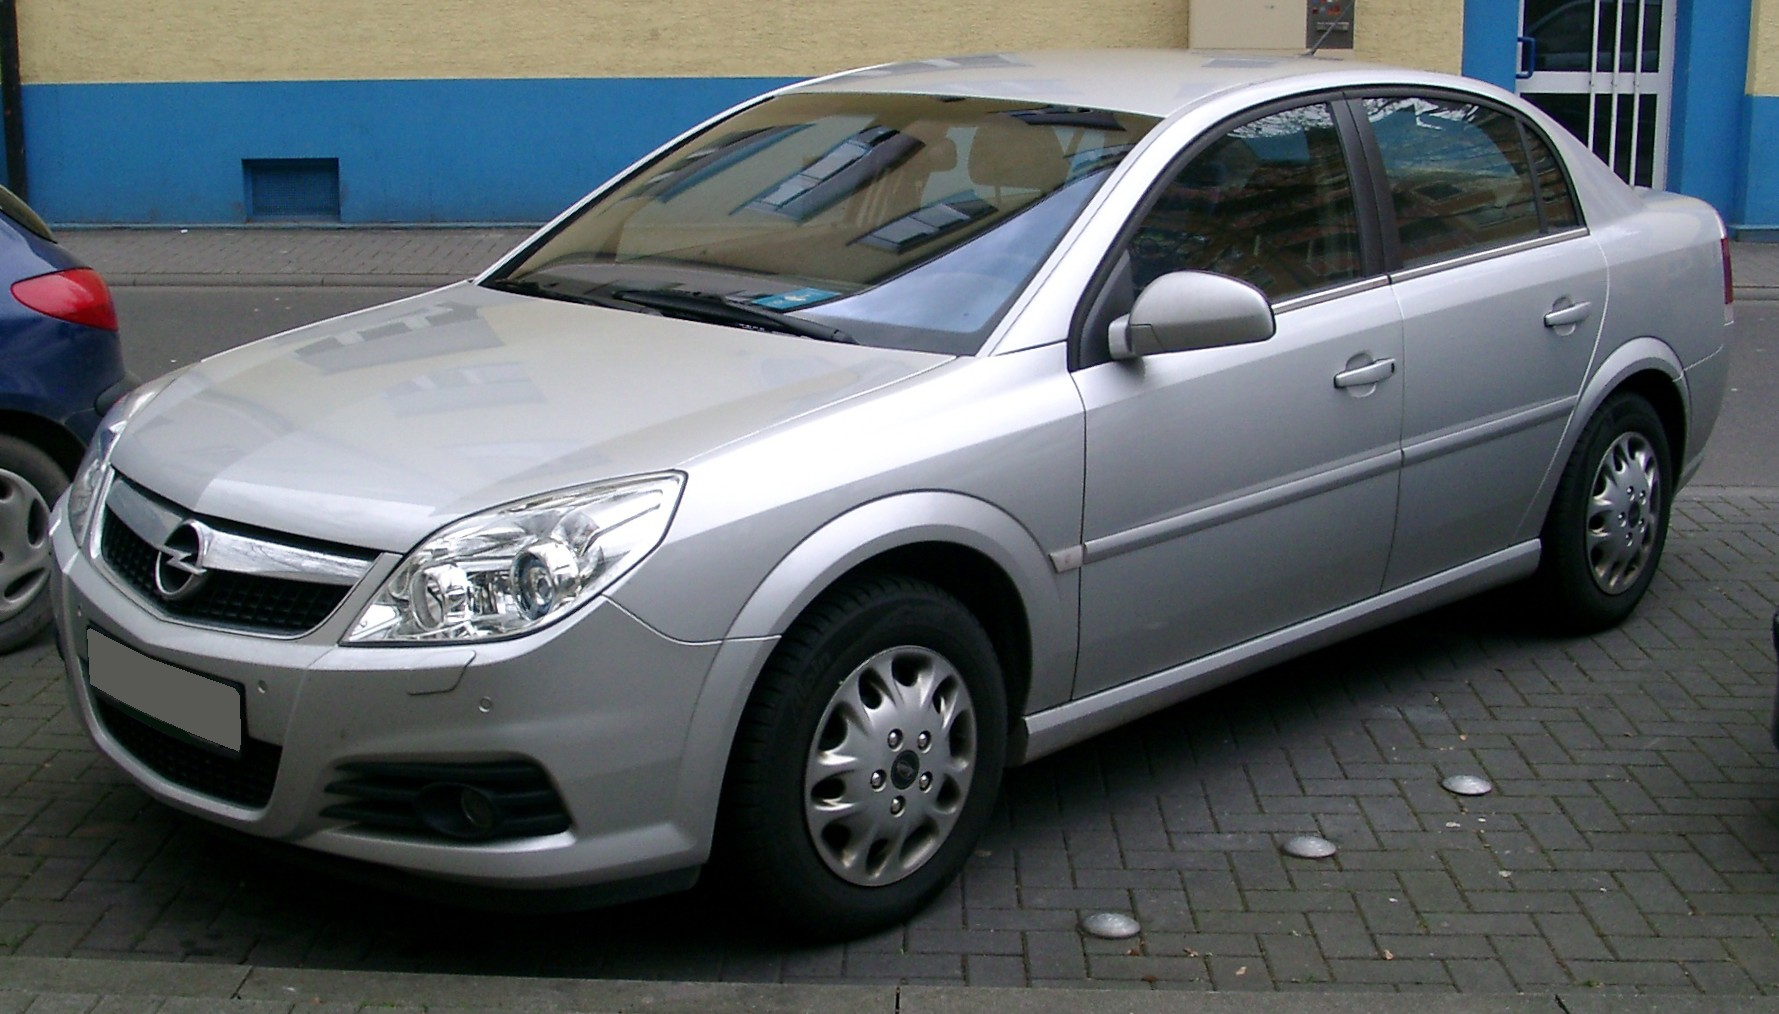 File Opel Vectra Front 20080226 Jpg Wikimedia Commons